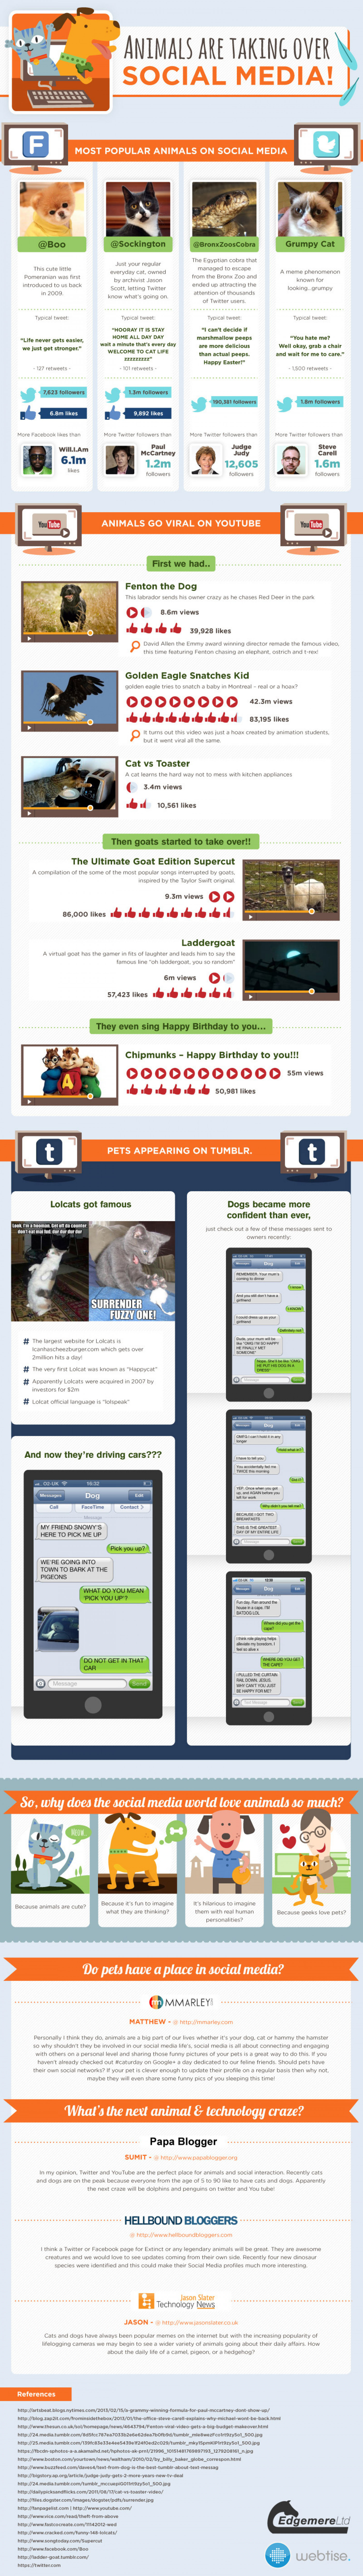 Animals are Taking Over Social Media! Infographic